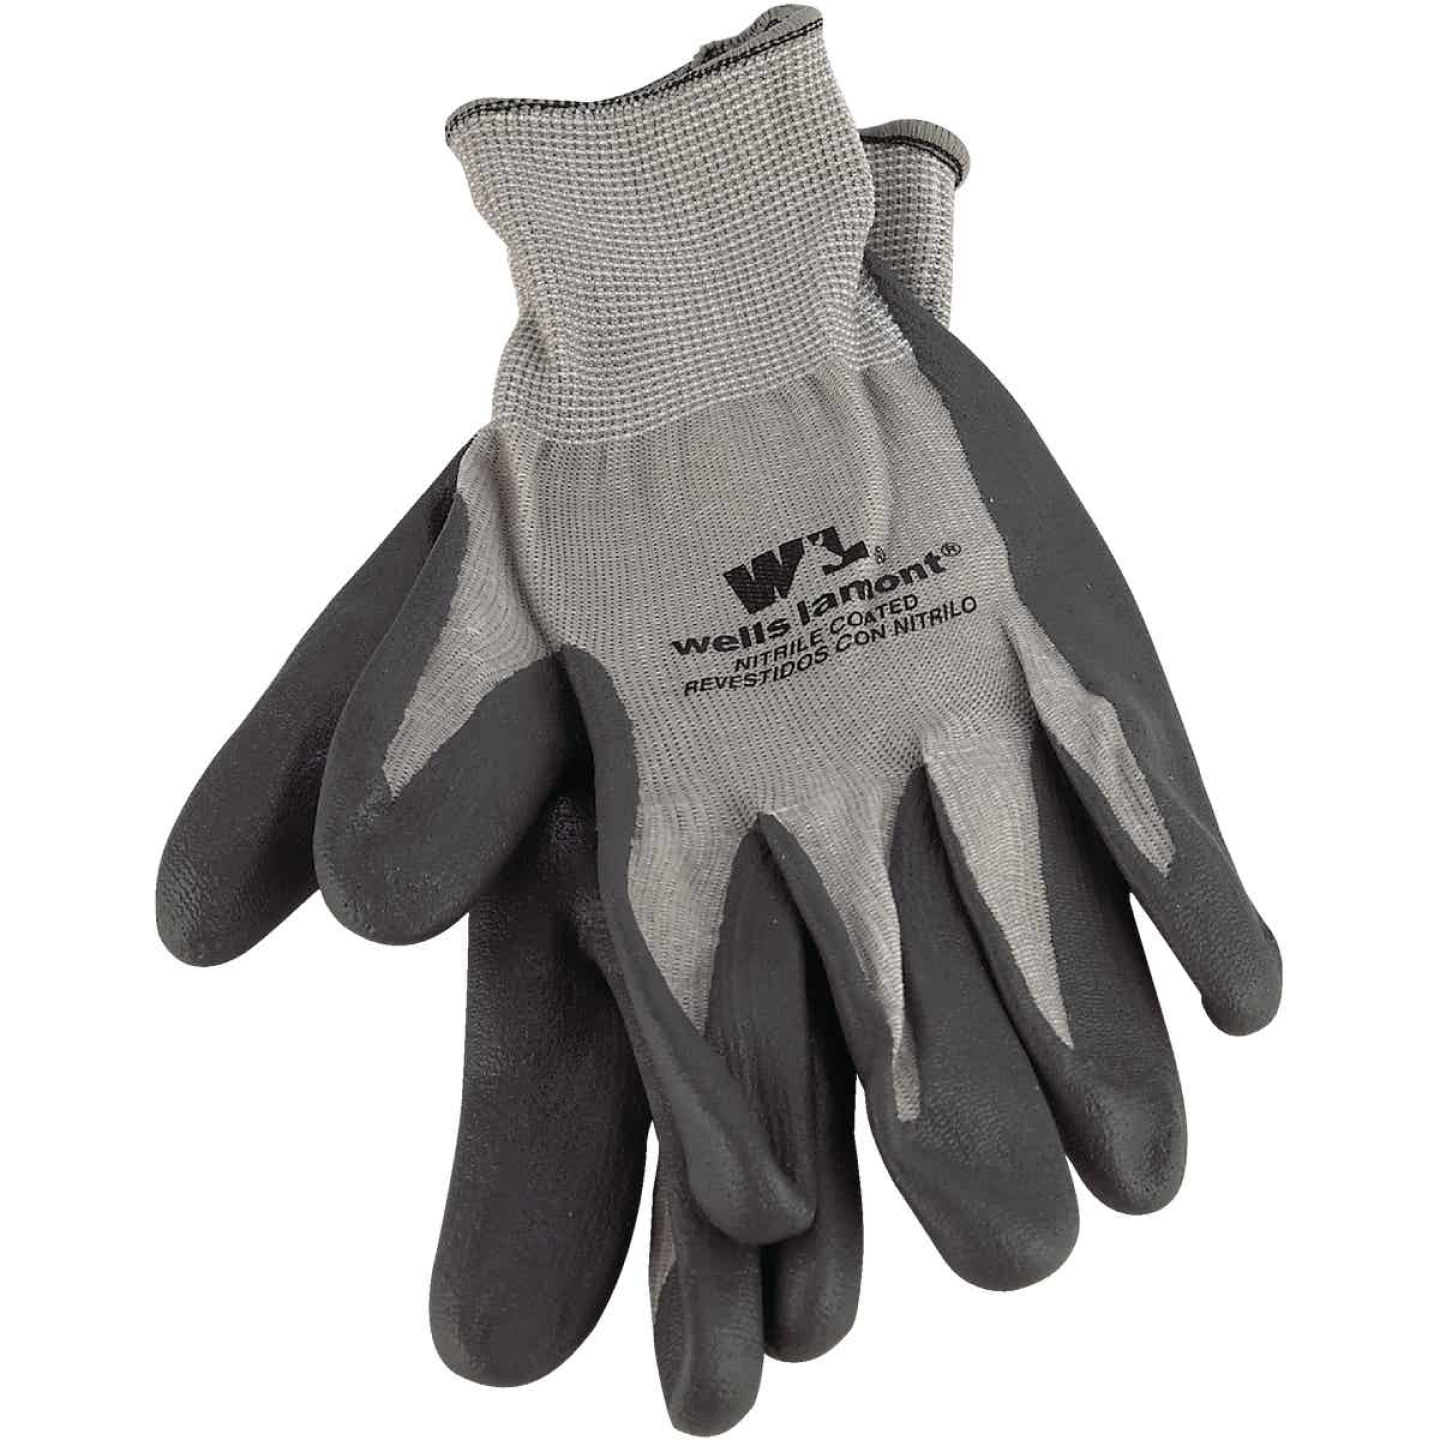 Wells Lamont Men's Large Fine Gauge Knit Nitrile Coated Glove Image 1